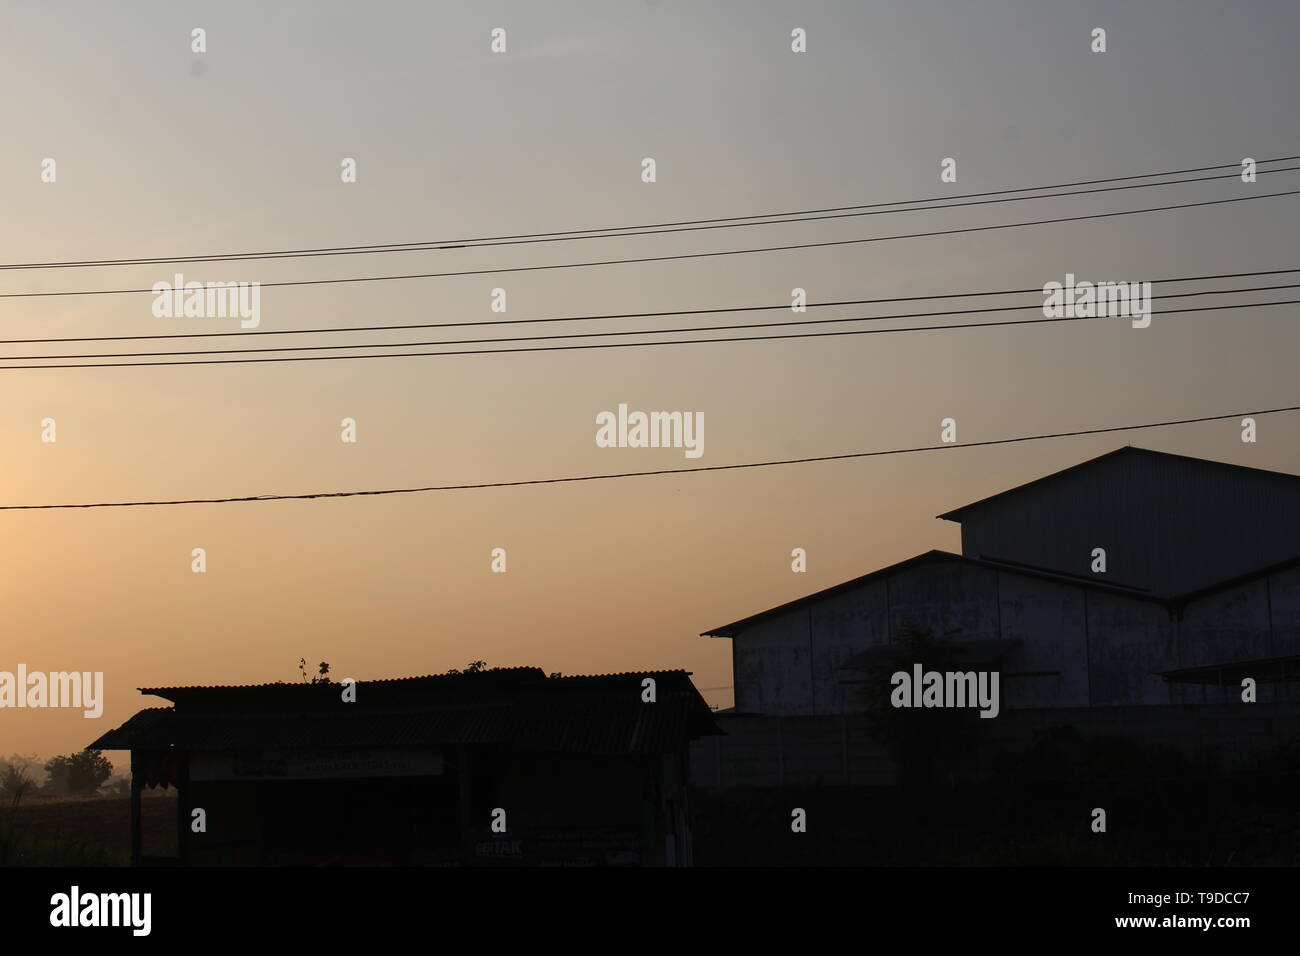 Sun rises behind the building. - Stock Image